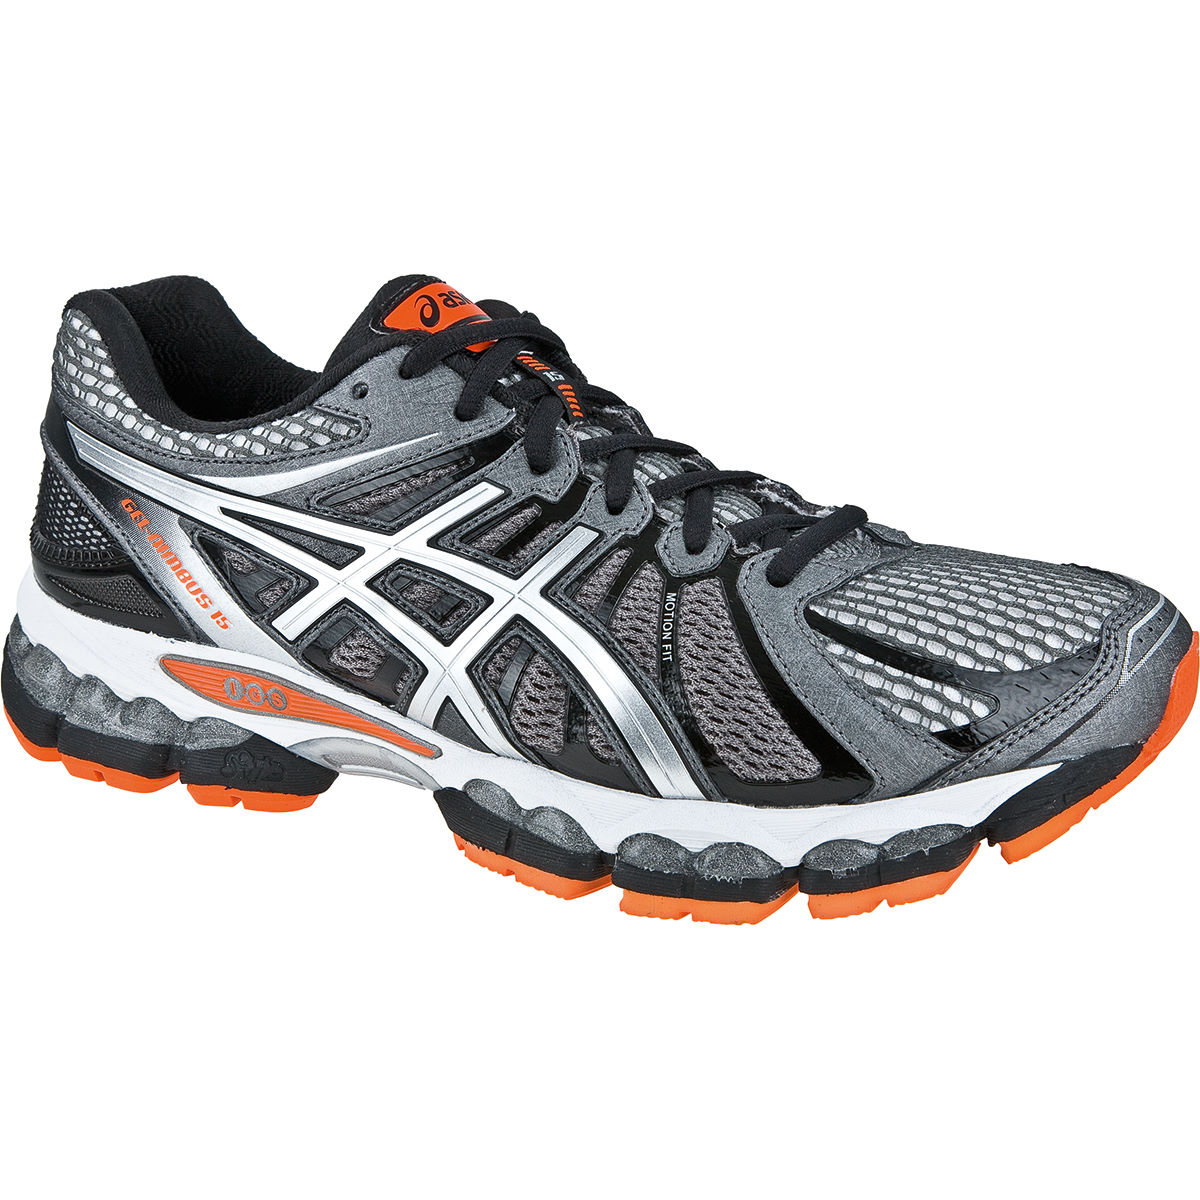 asics gel-nimbus 15 (4e) wide shoes aw13